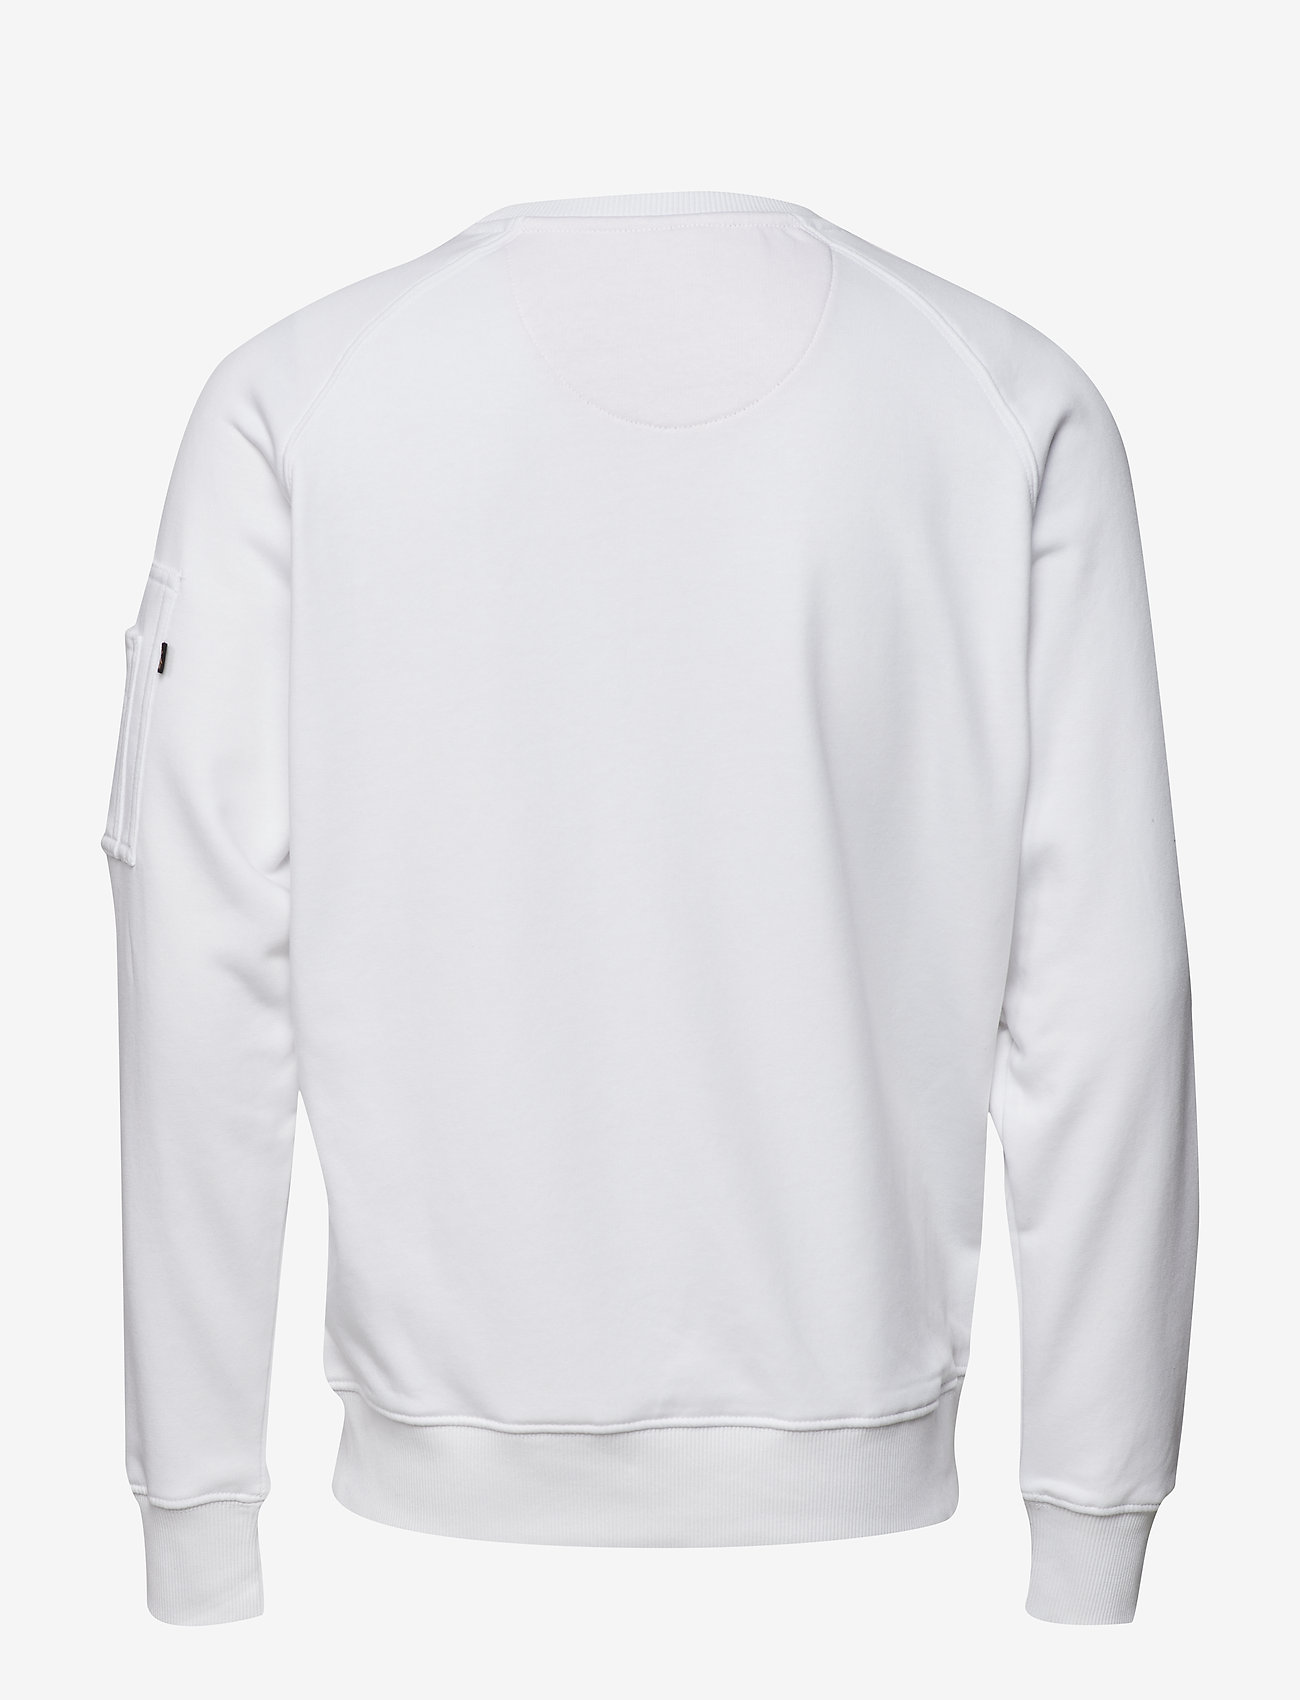 Alpha Industries X-Fit Sweat - Sweatshirts WHITE - Menn Klær